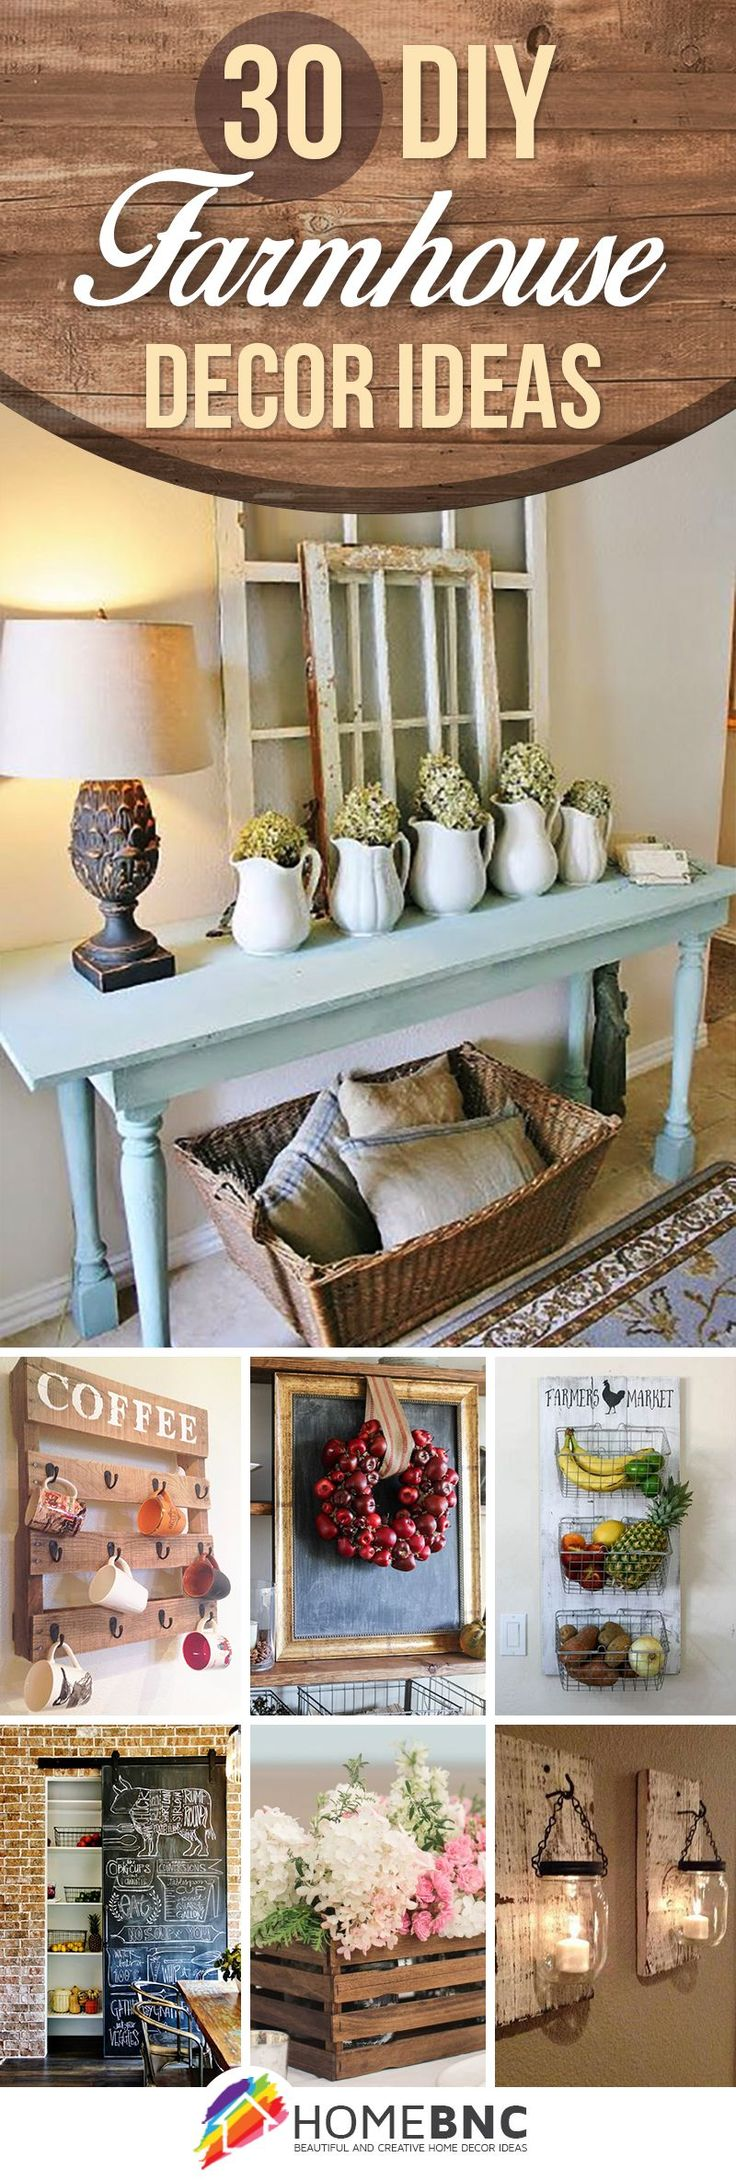 30 Ways DIY Farmhouse Decor Ideas Can Make Your Home Unique More